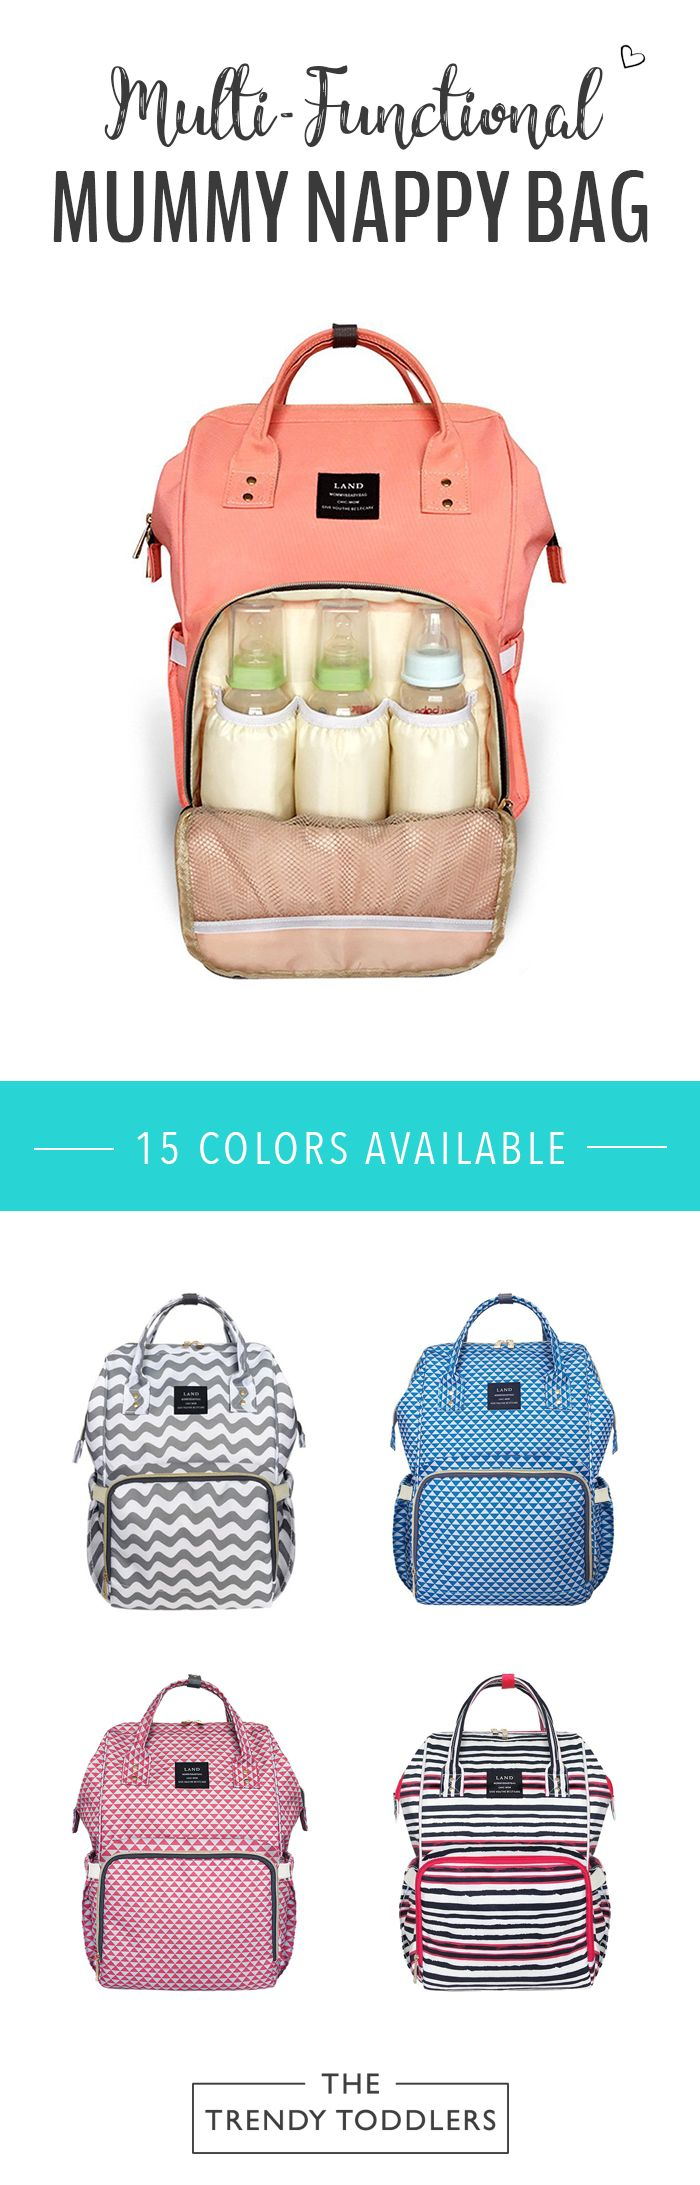 SALE 65% + FREE SHIPPING! SHOP Our Multi-Functional Mummy Nappy Bag